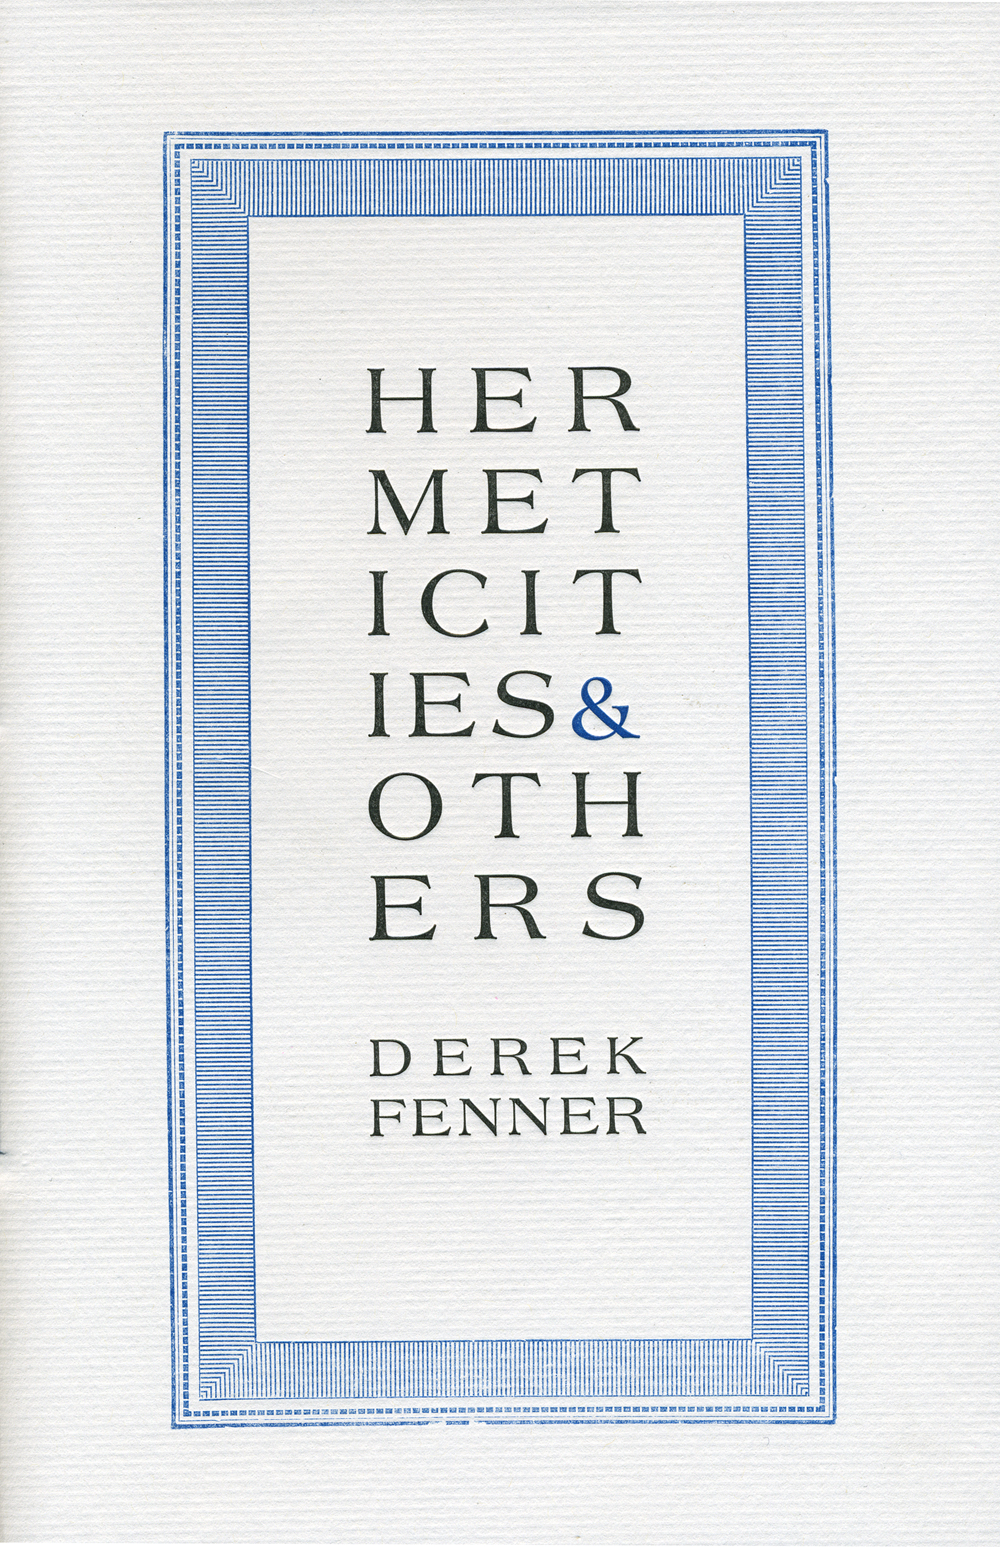 Hermeticities & Others